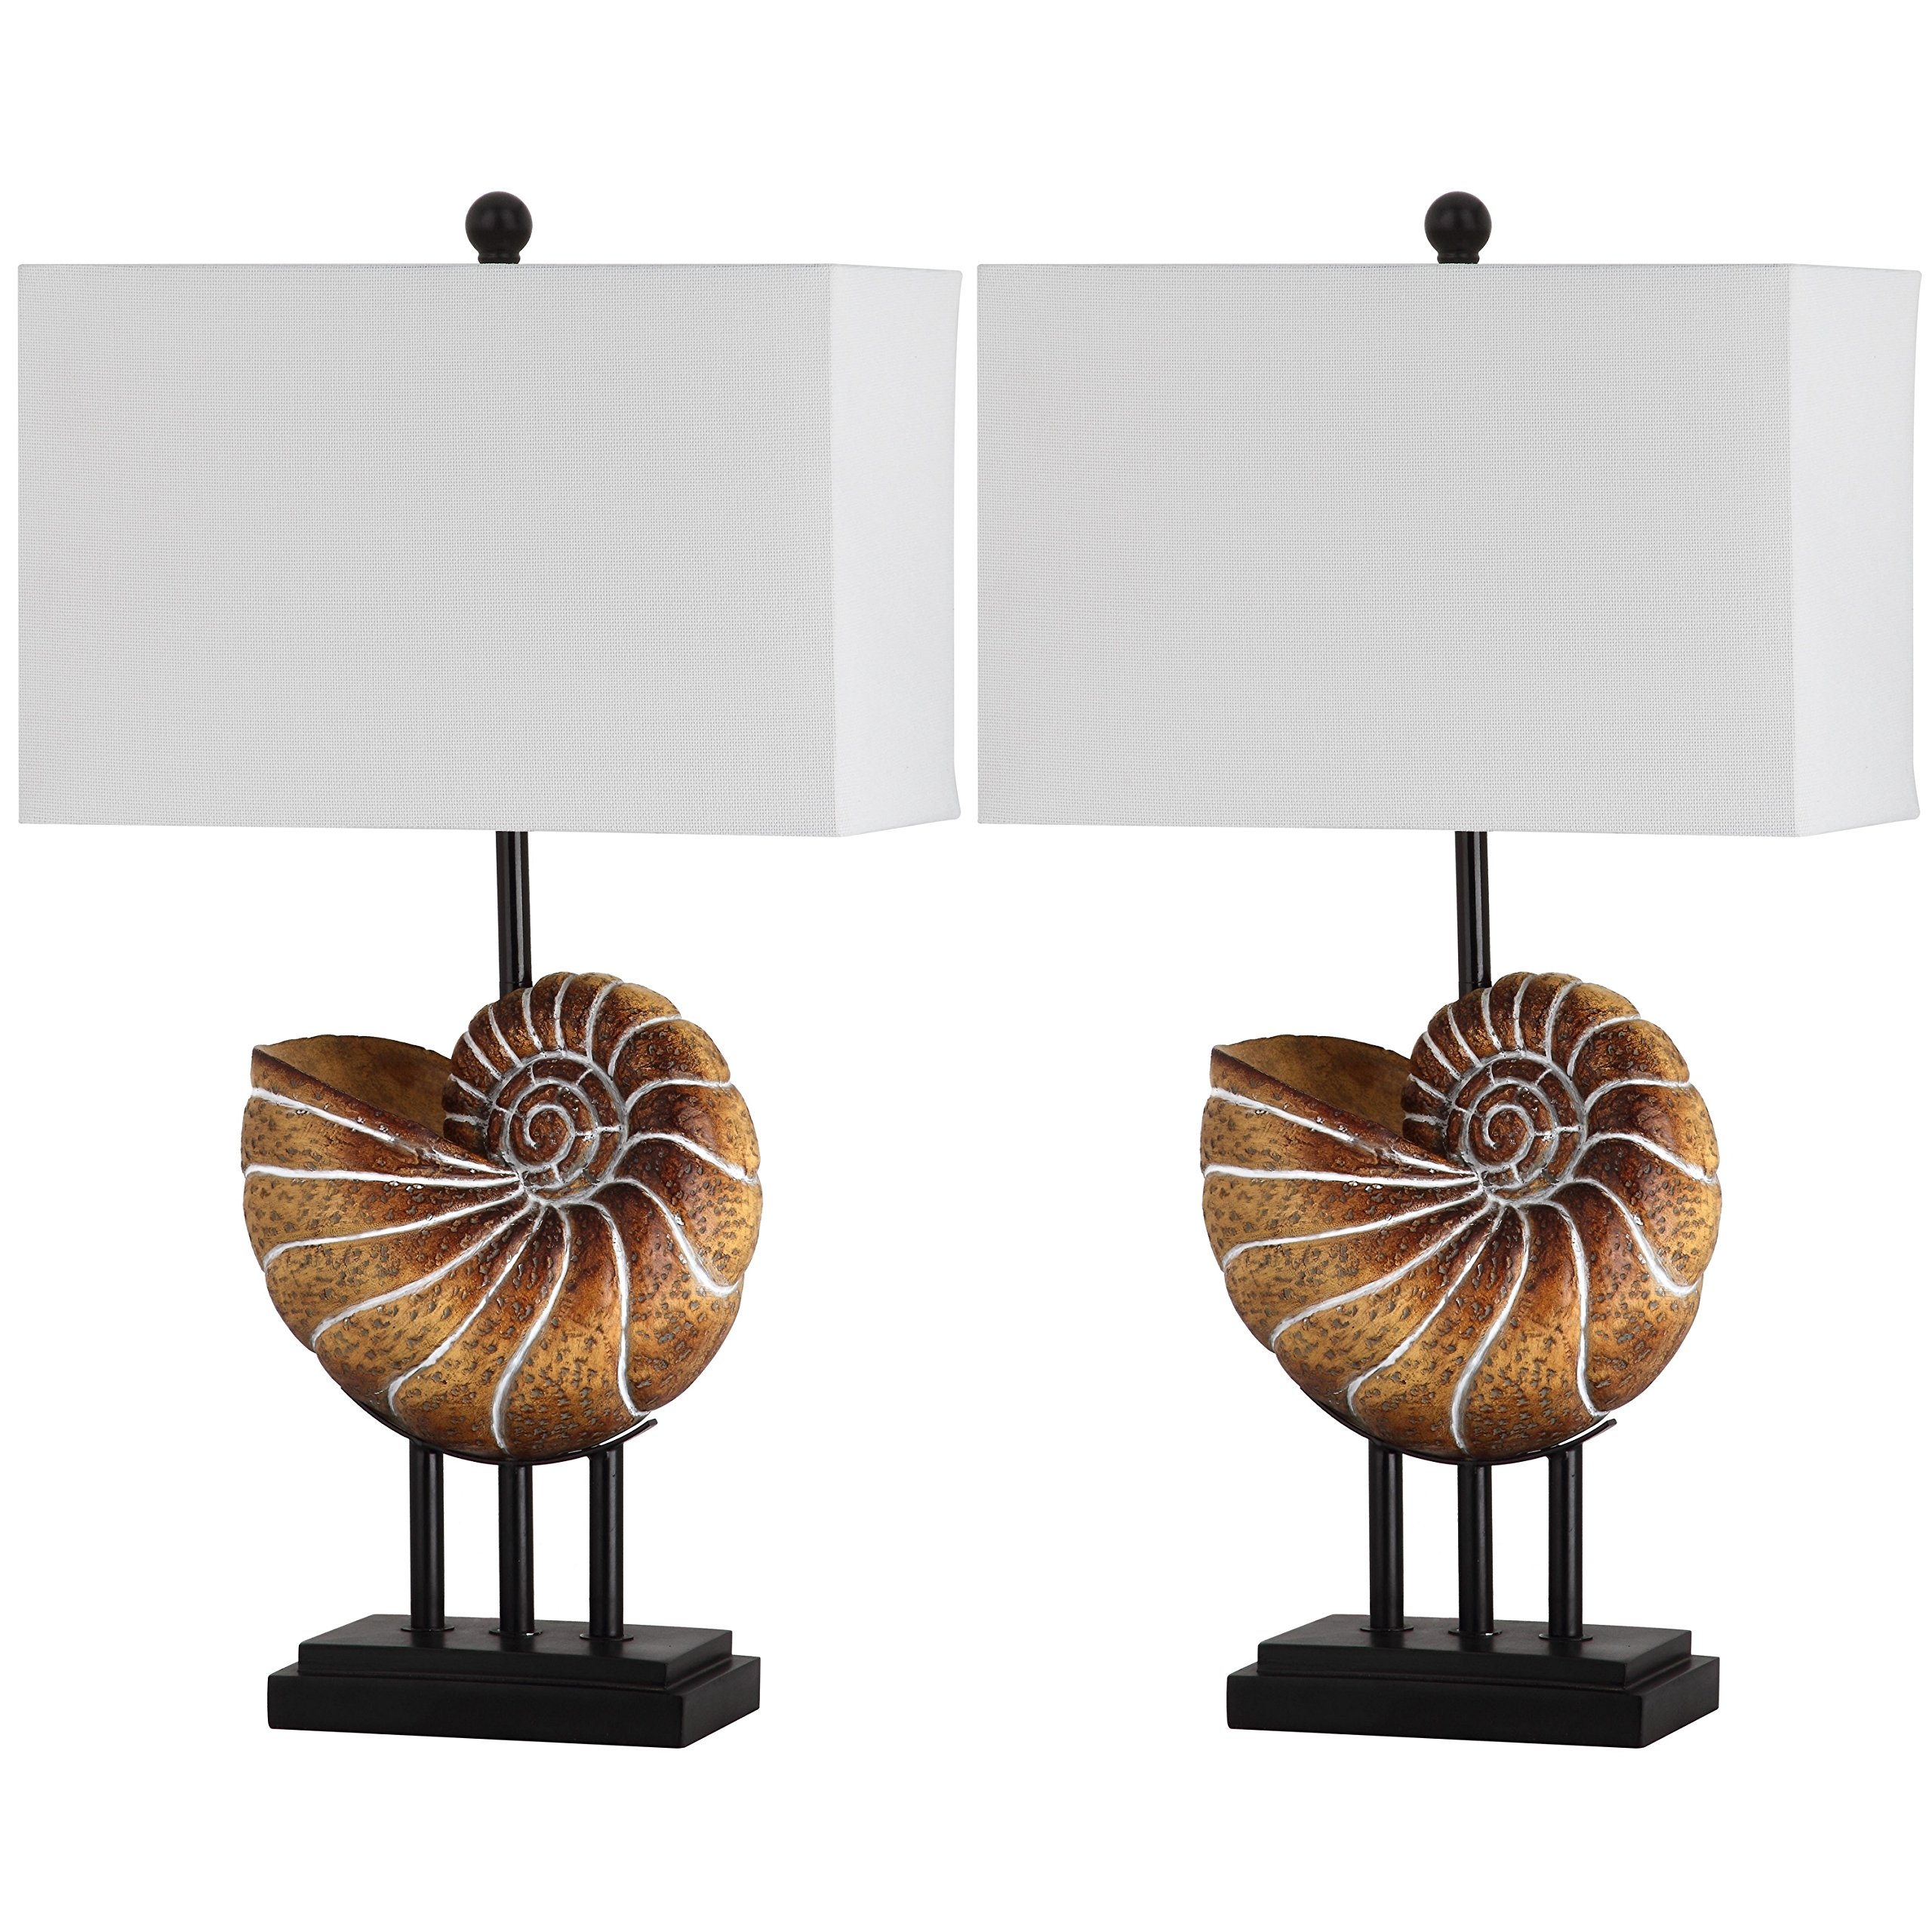 Safavieh Lighting Collection Nautilus Shell Lt Brown 28-inch Table Lamp (Set of 2) by Safavieh